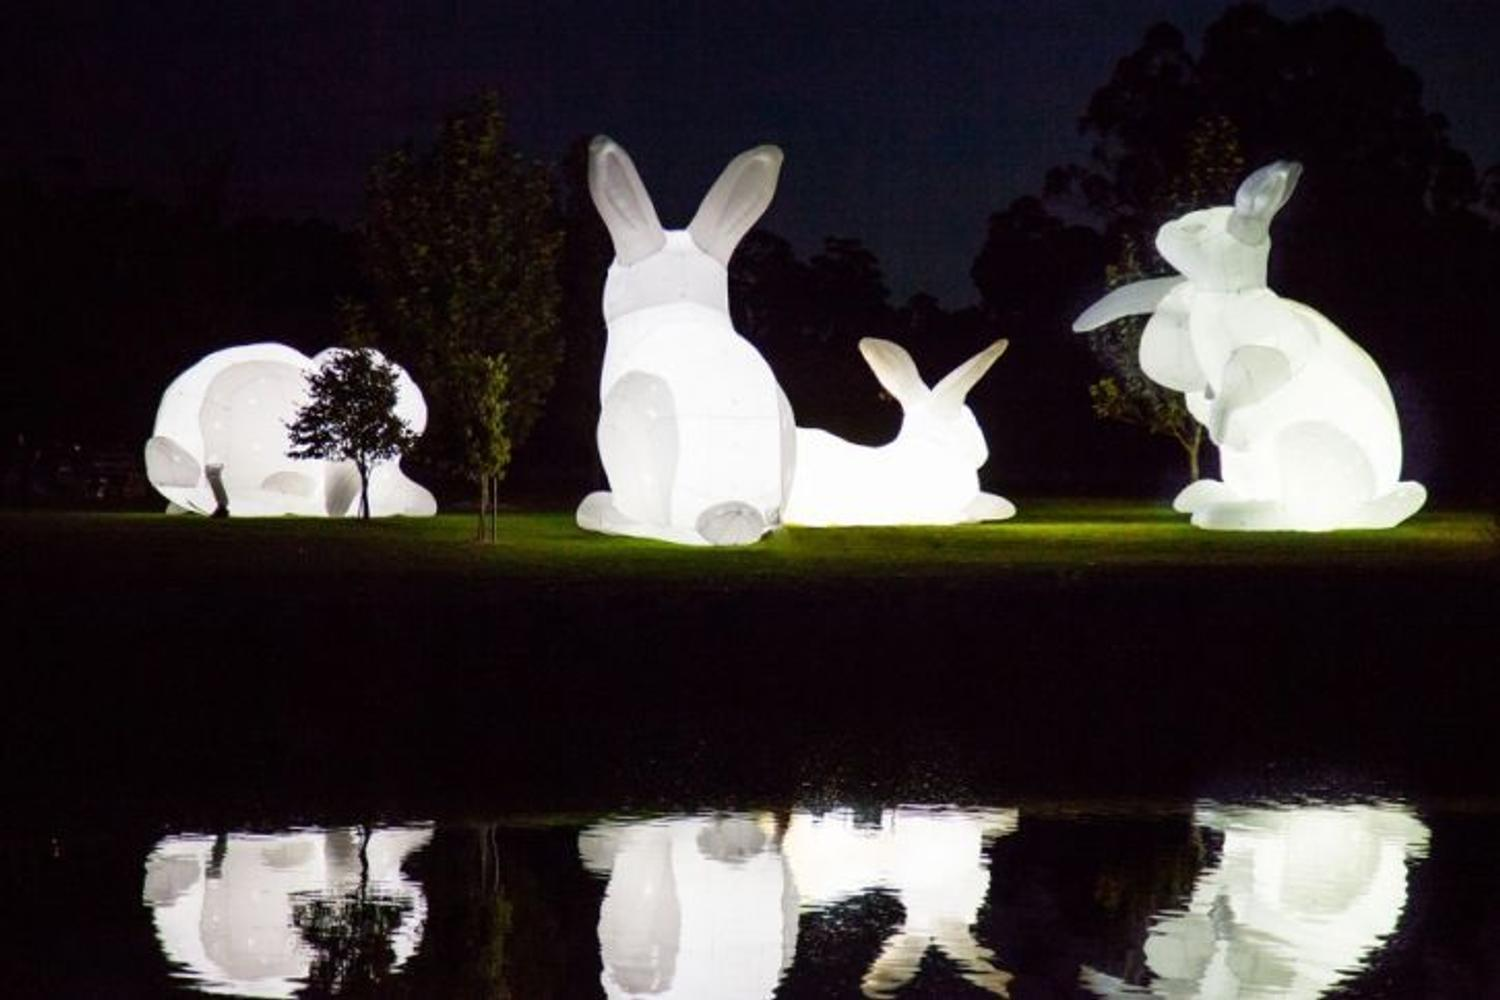 Amanda Parer S Giant Glowing Bunnies Take Over Park At